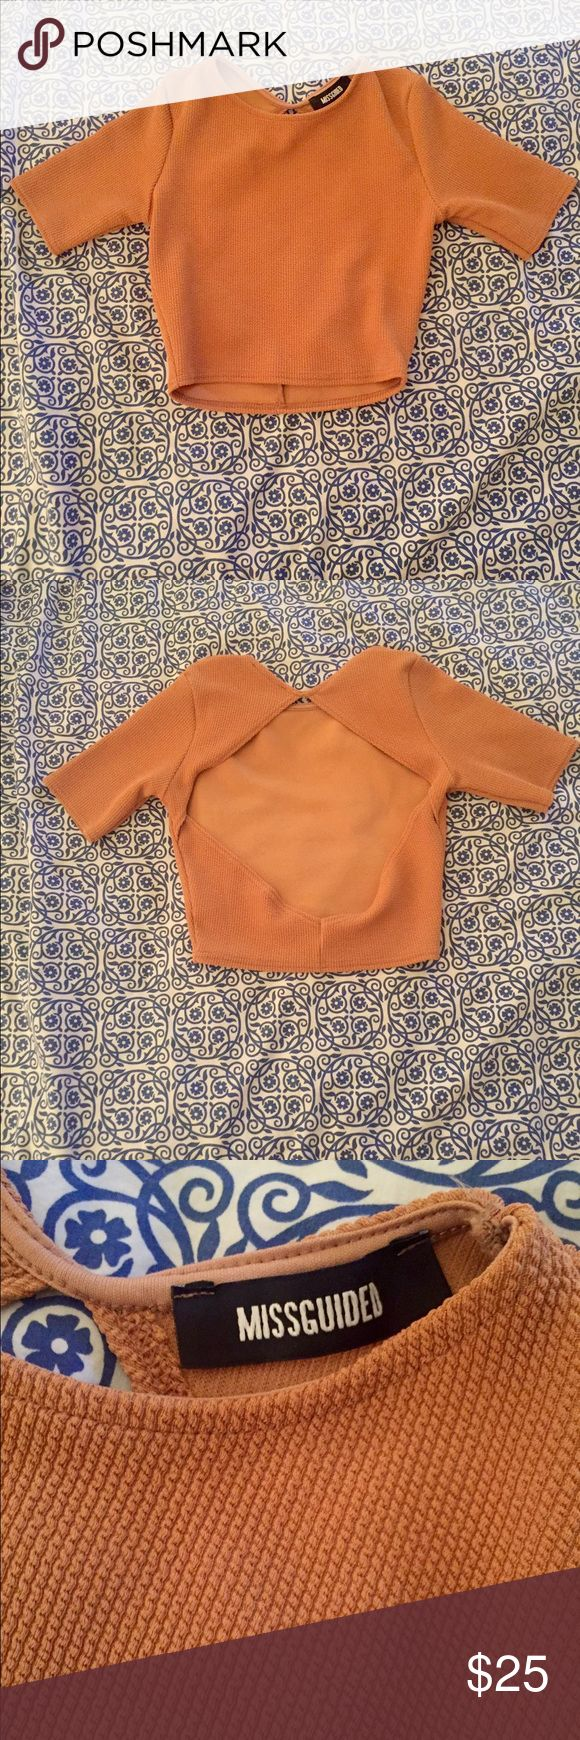 Camel crop top from missguided Textured camel crop top with open back detailing. Never worn as it is quite small Missguided Tops Crop Tops